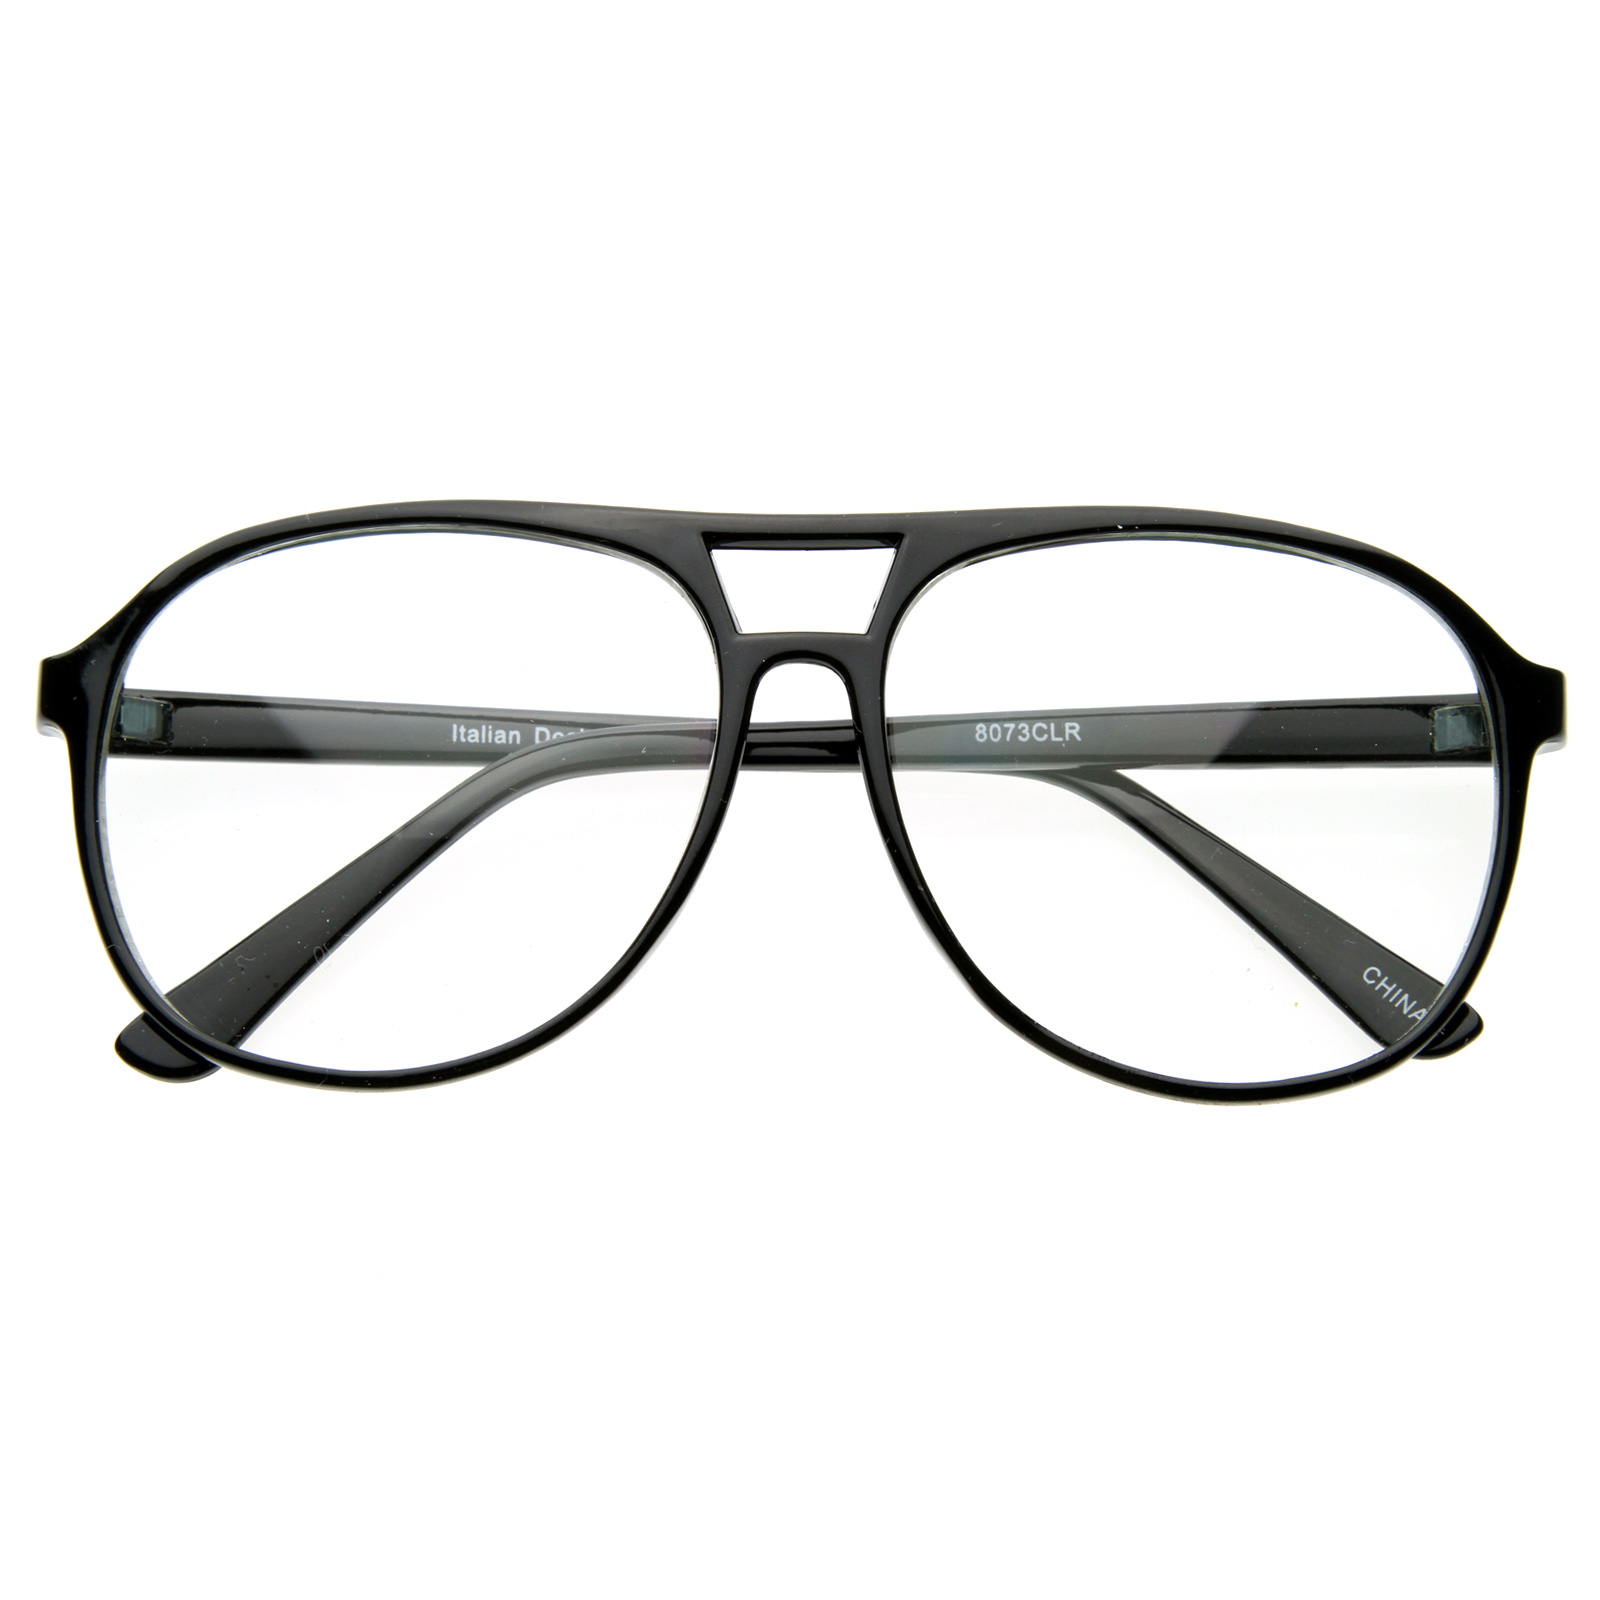 Large Frame Retro Reading Glasses : Cool Trendy Thin Frame Large Retro Pops Mens Clear Lens ...